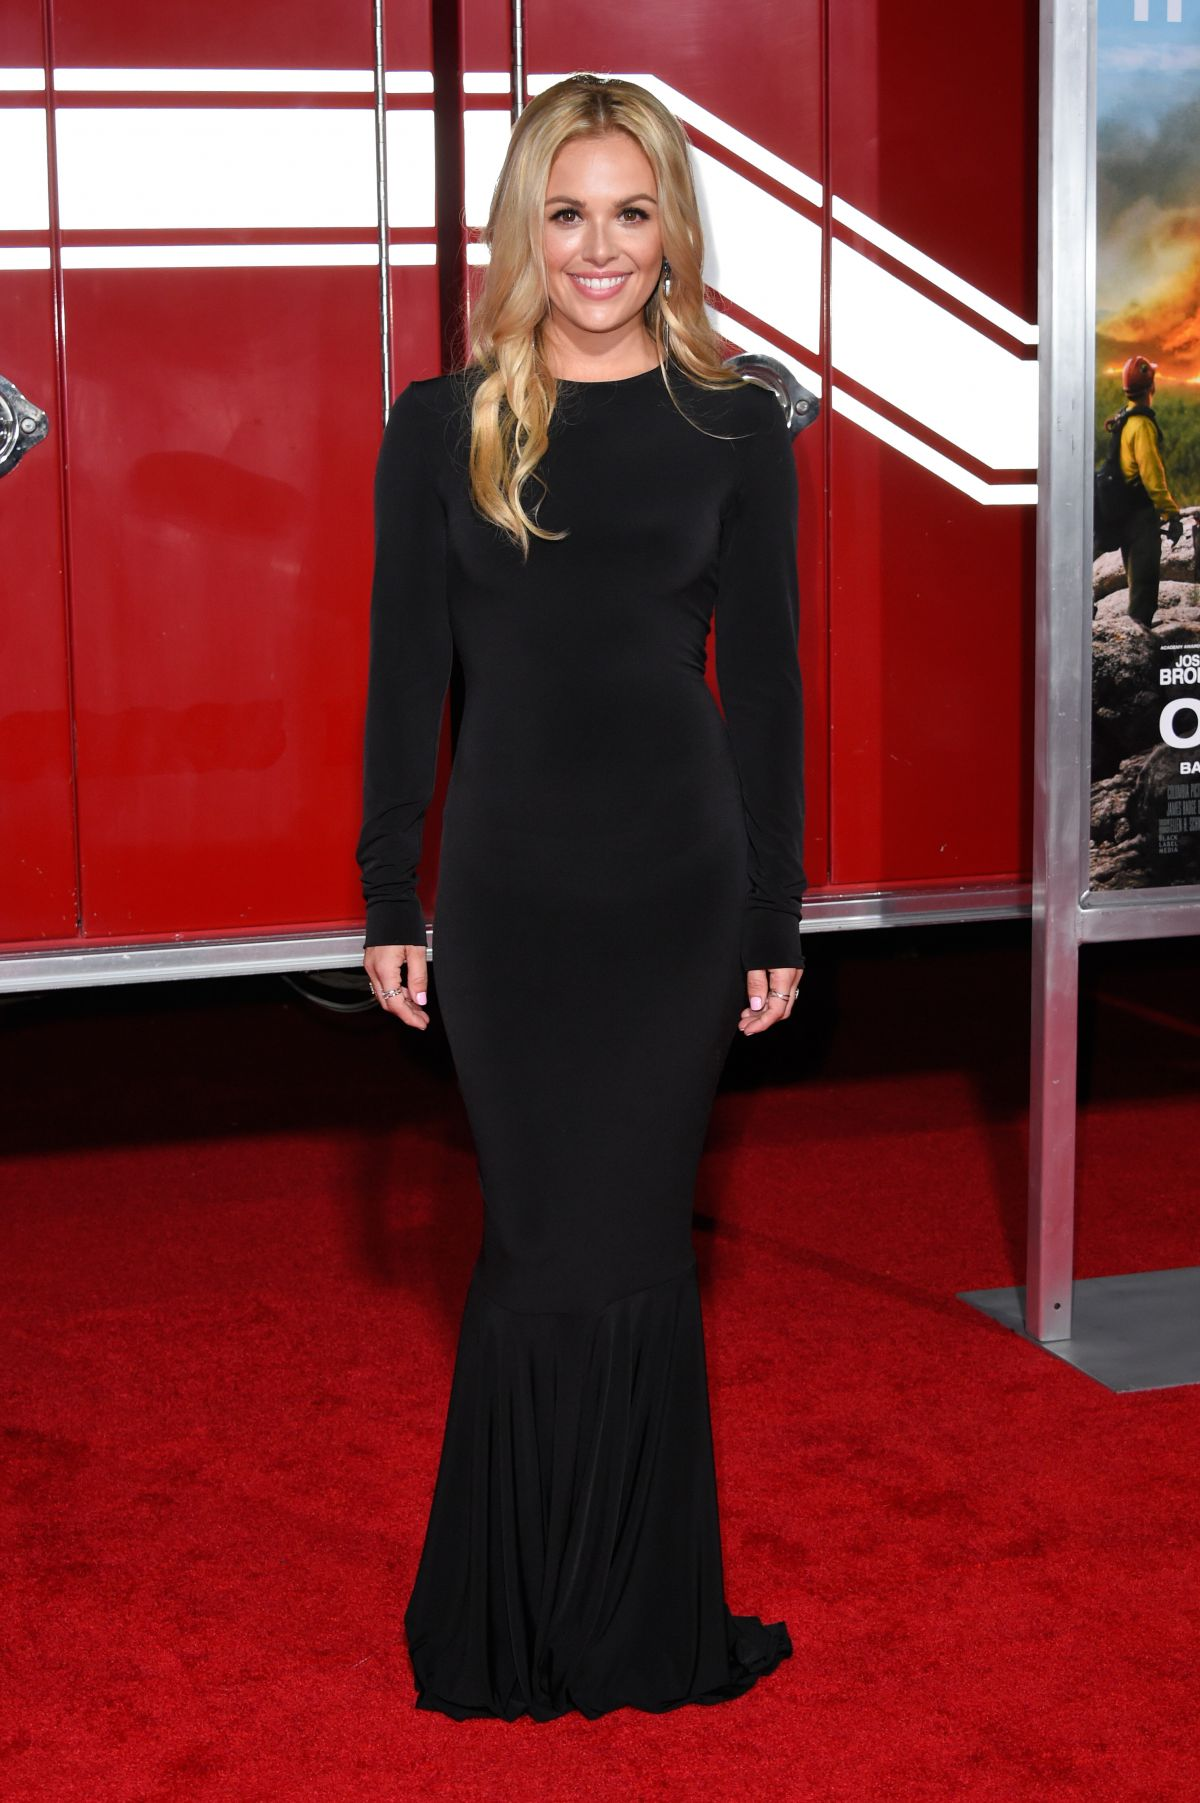 Natalie Hall At 'Only The Brave' film premiere, Los Angeles   natalie-hall-at-only-the-brave-film-premiere-los-angeles-43